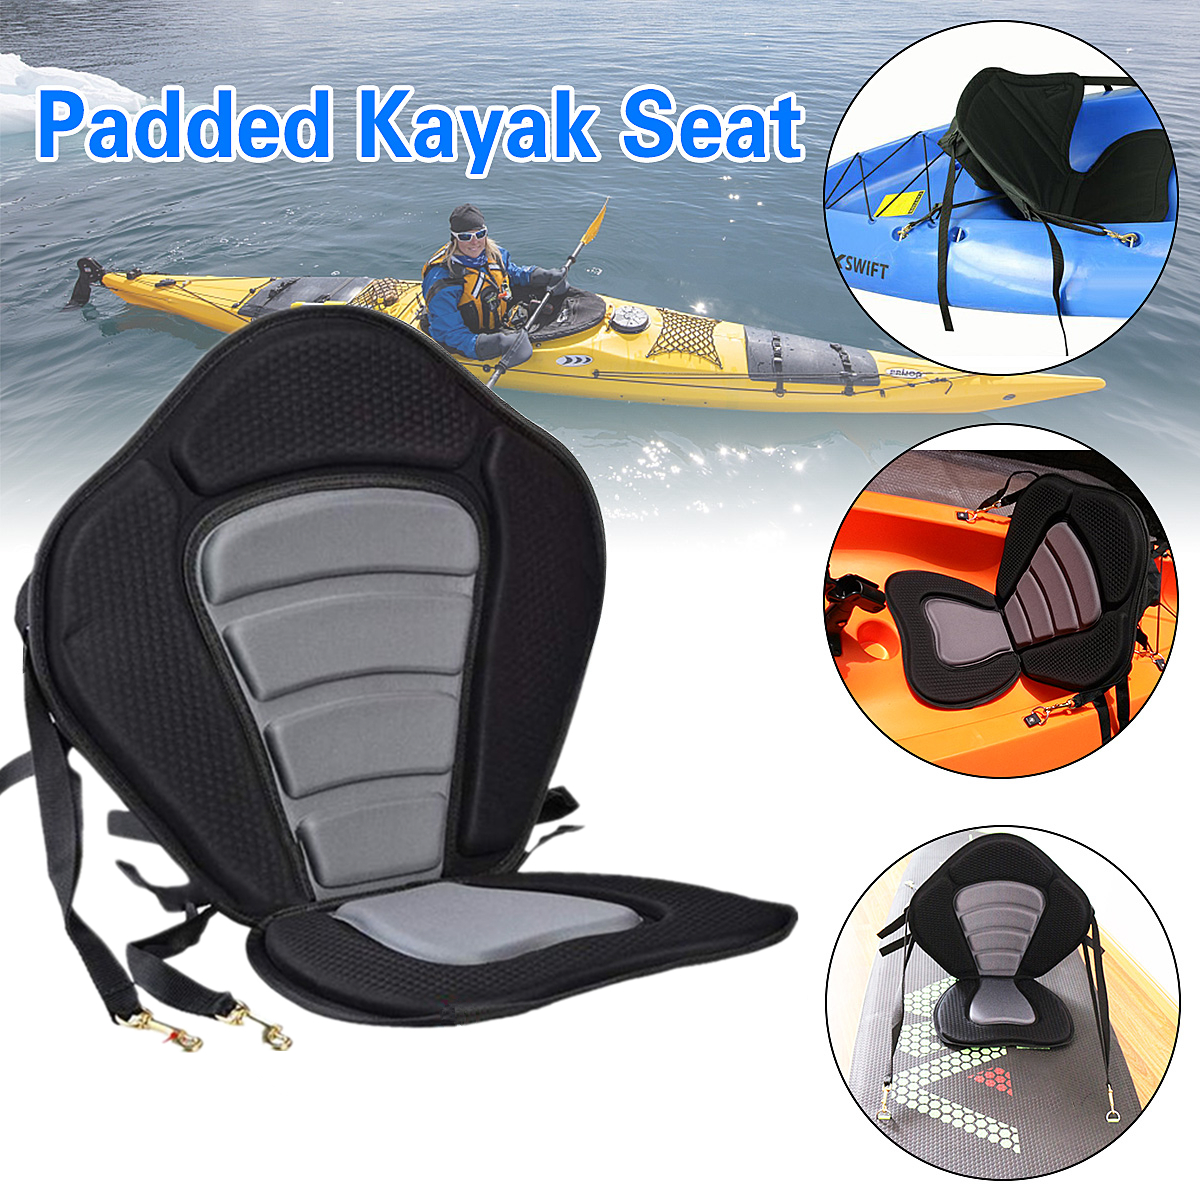 Kayak Cushion Deluxe Padded Kayak / Boat Seat Portable Soft Antiskid Padded Base Adjustable High Backrest Back Cushion Canoe ...